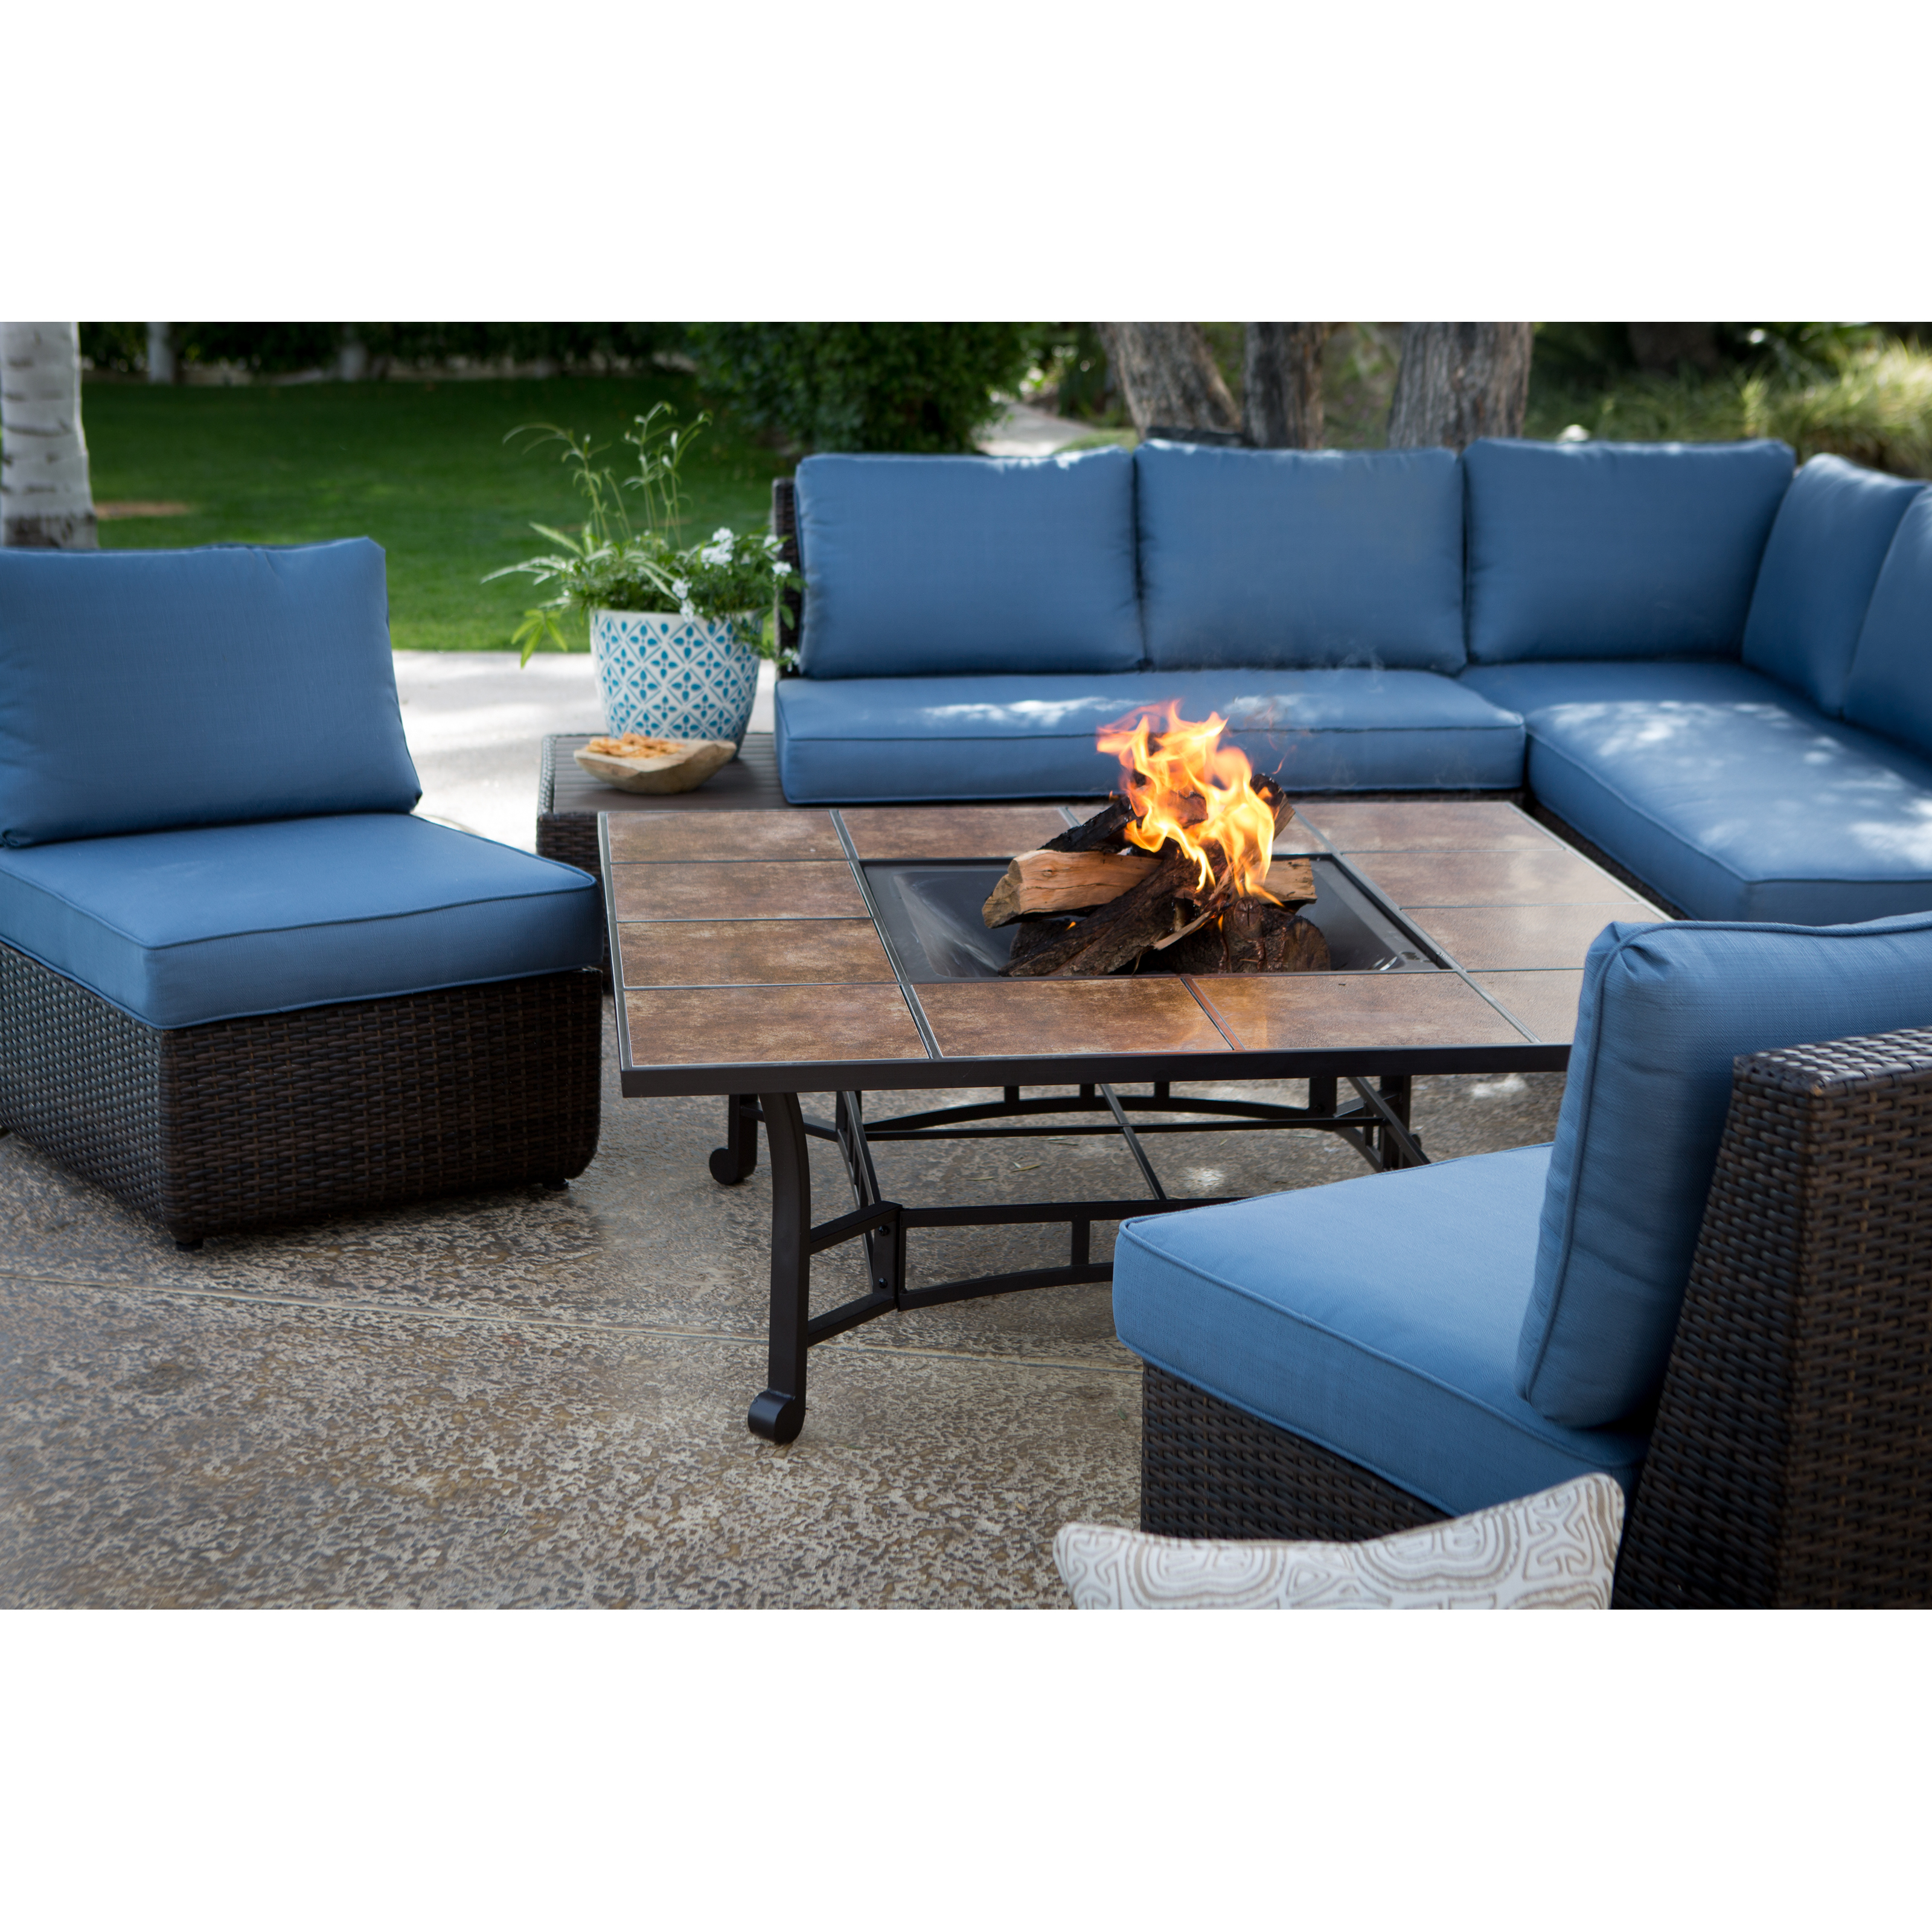 Belham Living Luciana Bay Sofa Sectional Set With Wheatland Fire Pit